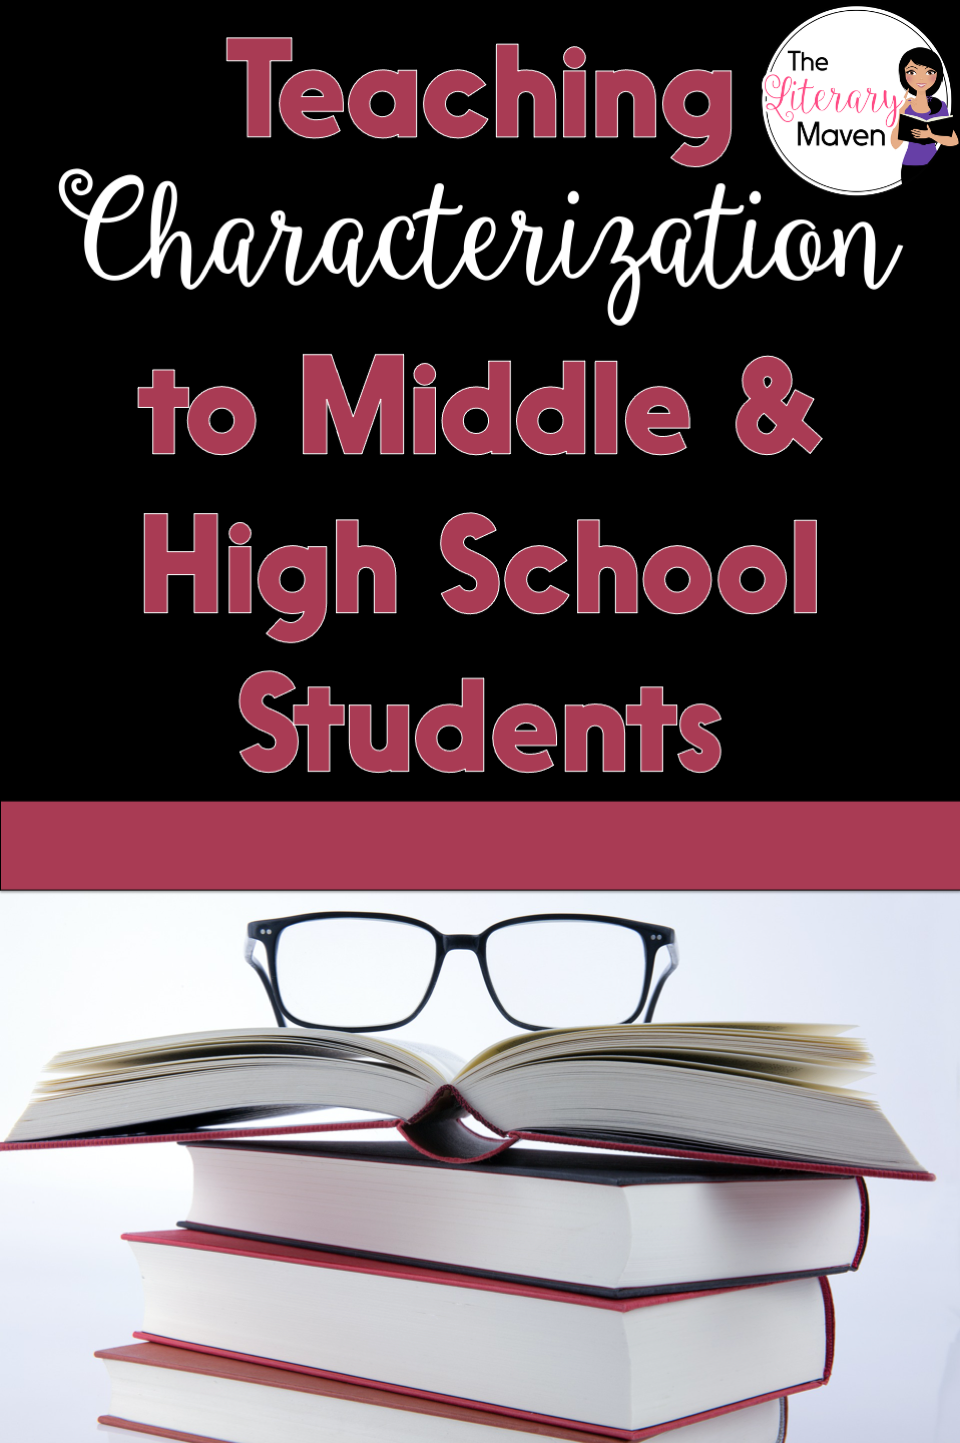 Use these ideas for teaching characterization to middle and high school students with any short story, novel, or drama.